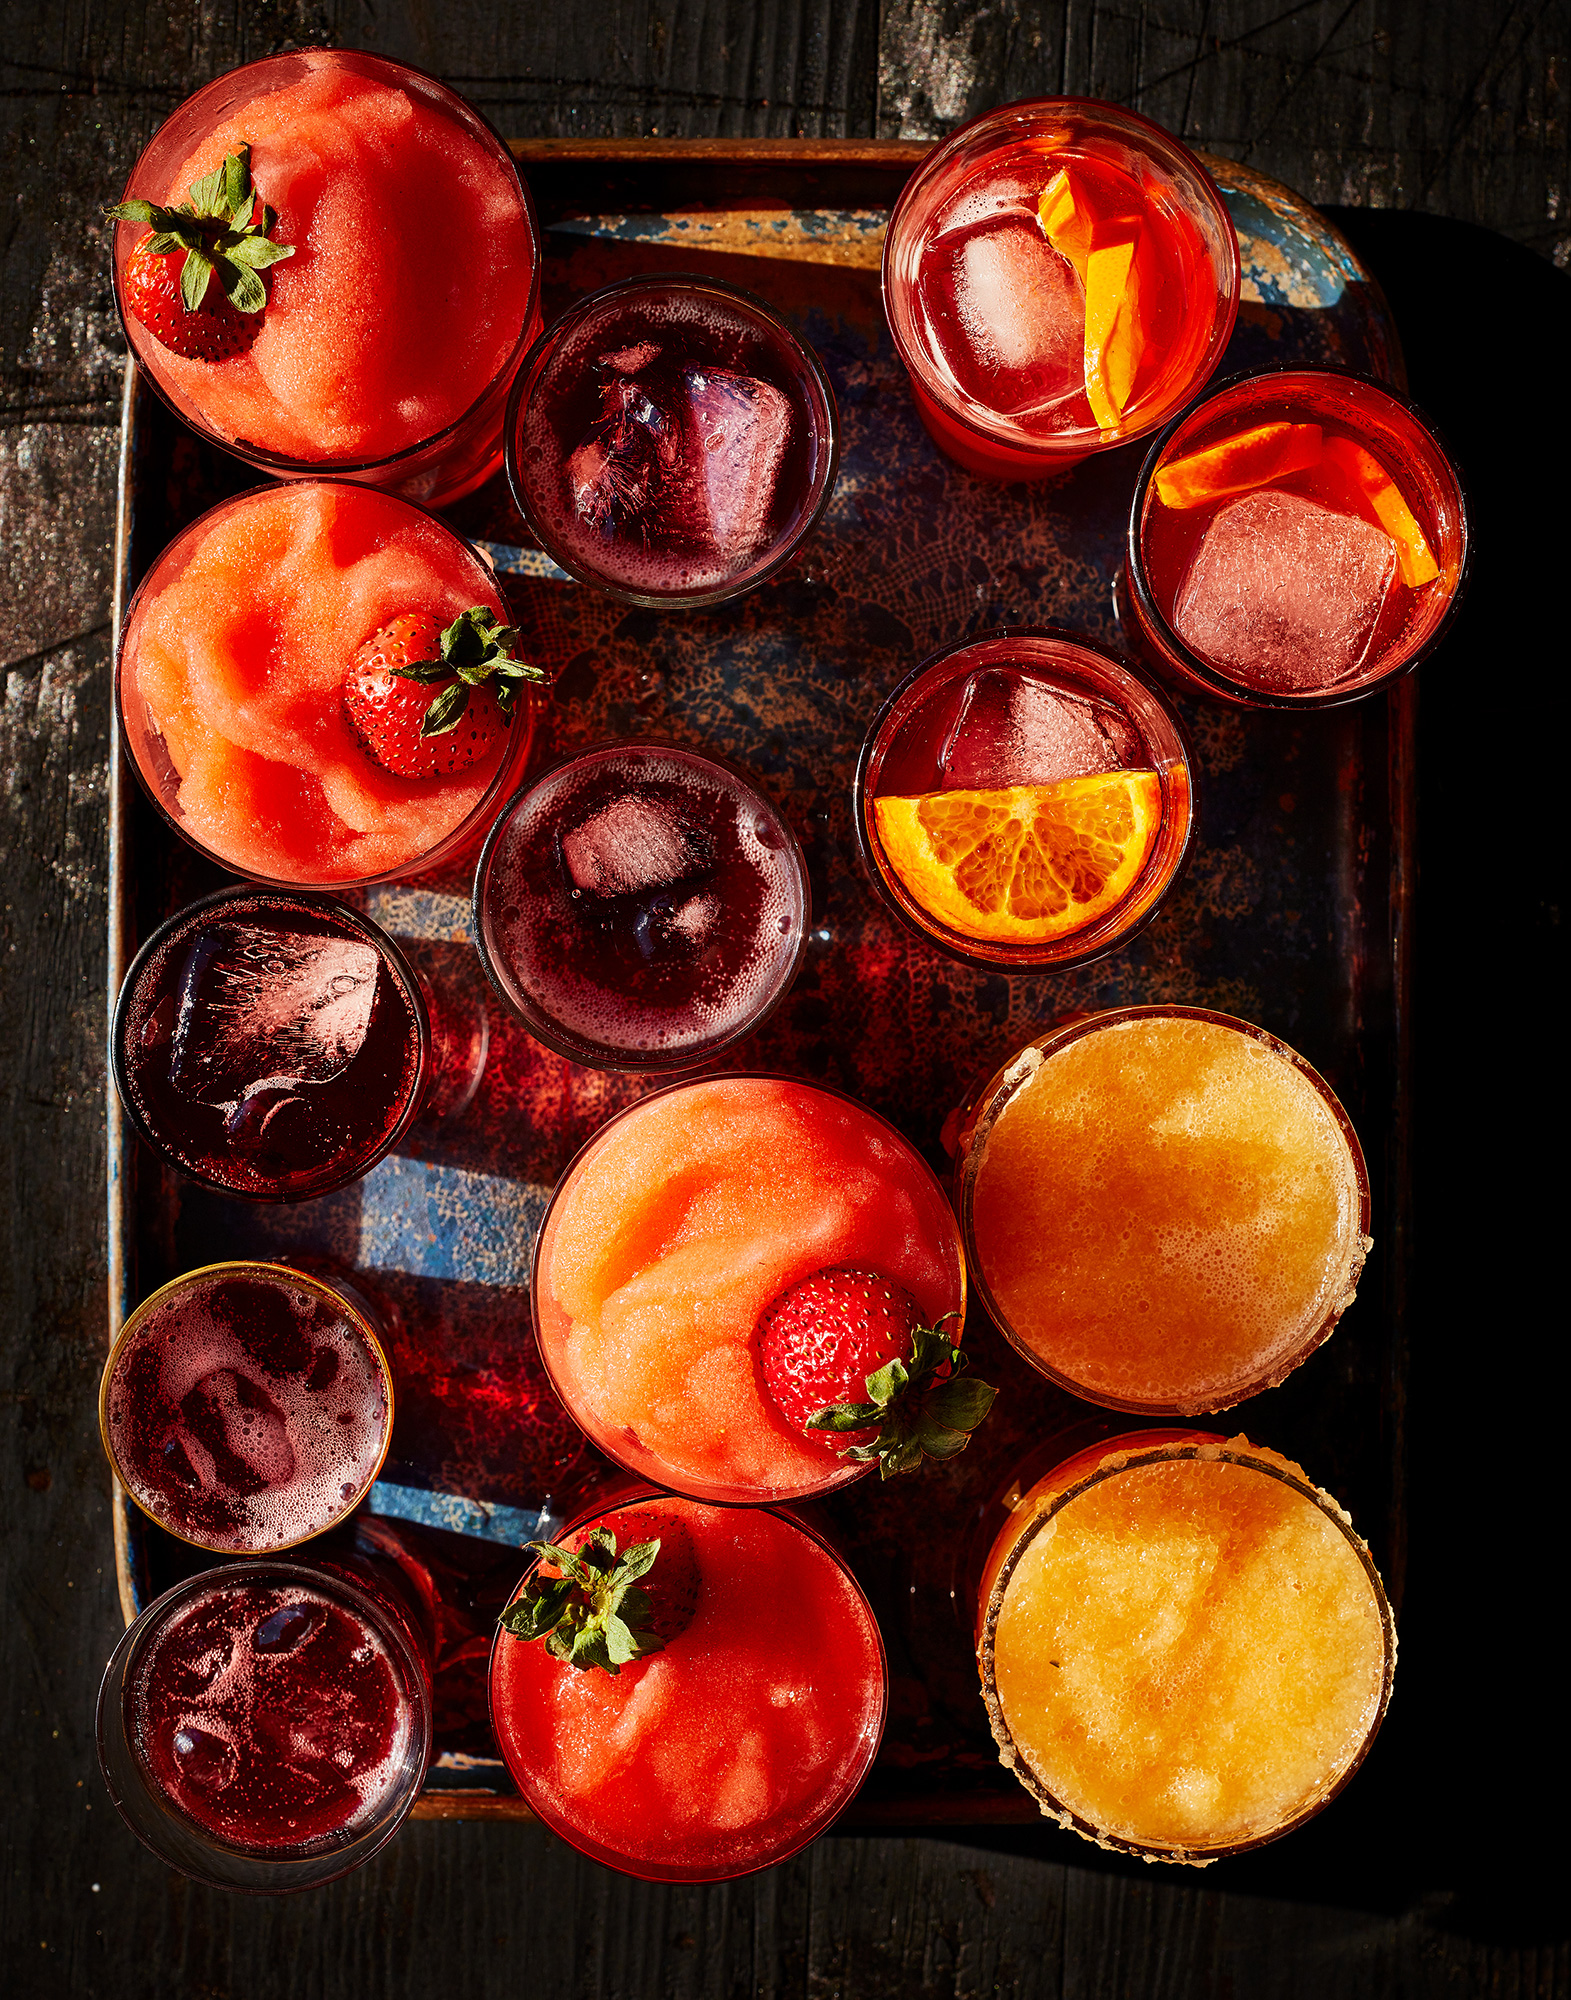 91_Melon_Tequila_Cooler_Cherry_Vodka_Soda_Fresh_Strawberry_Daiquiri_J_Miller_2642